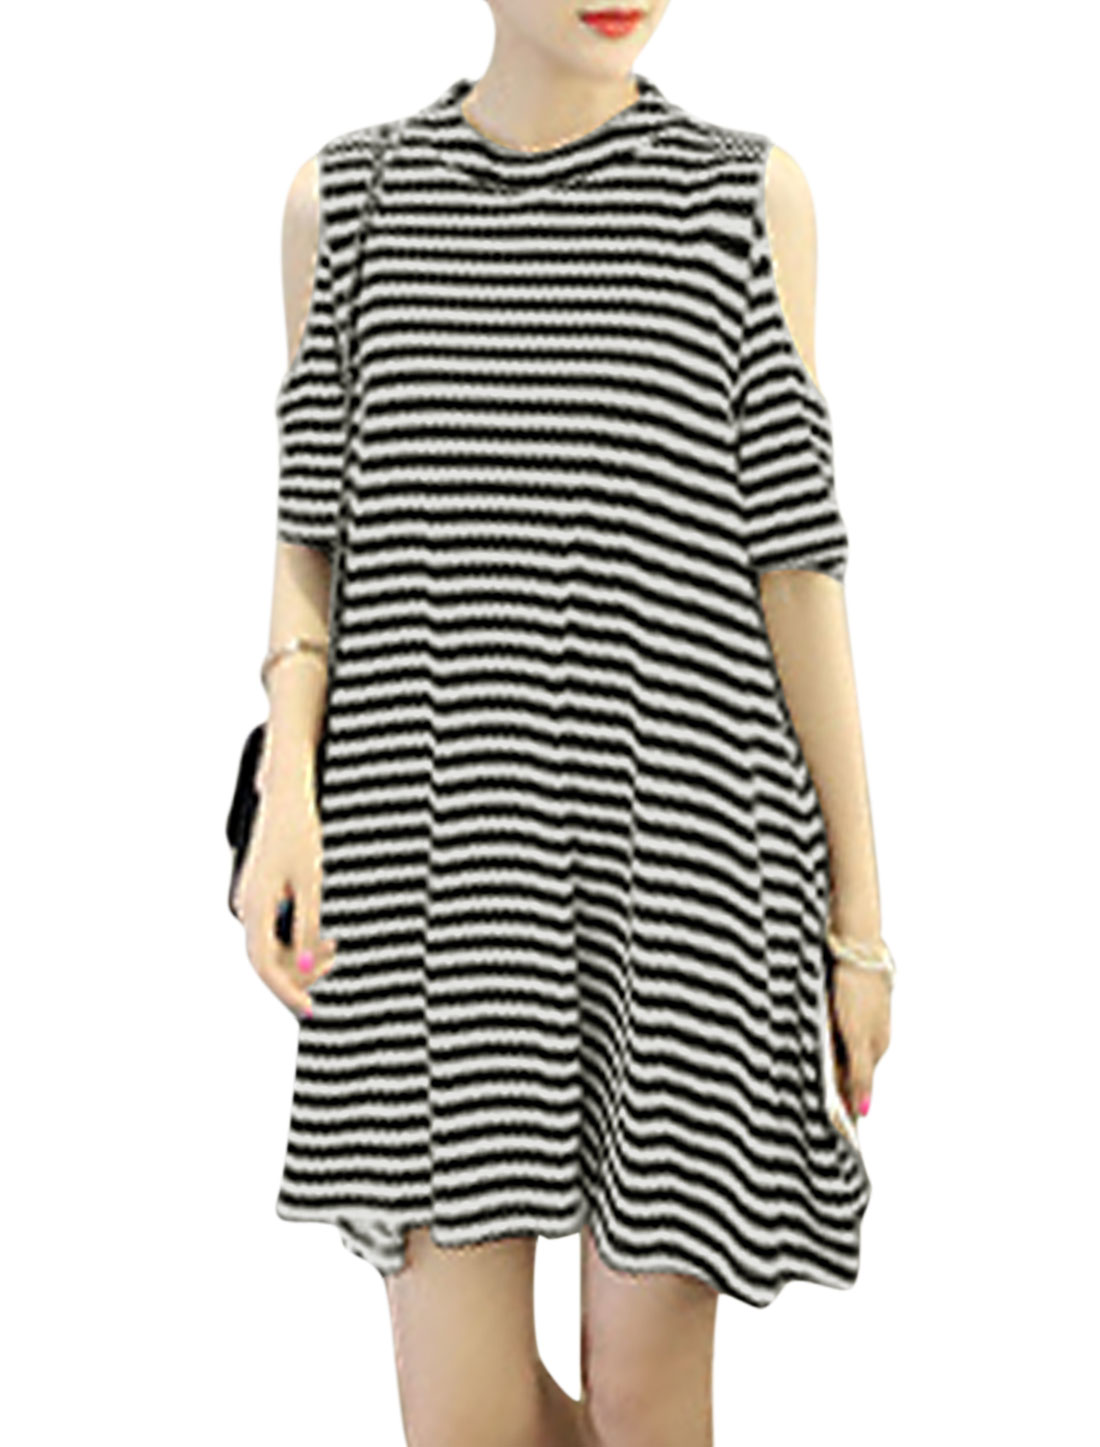 Women Stand Collar Stripes Cut Out Elbow Sleeves A-Line Dress Black White XS